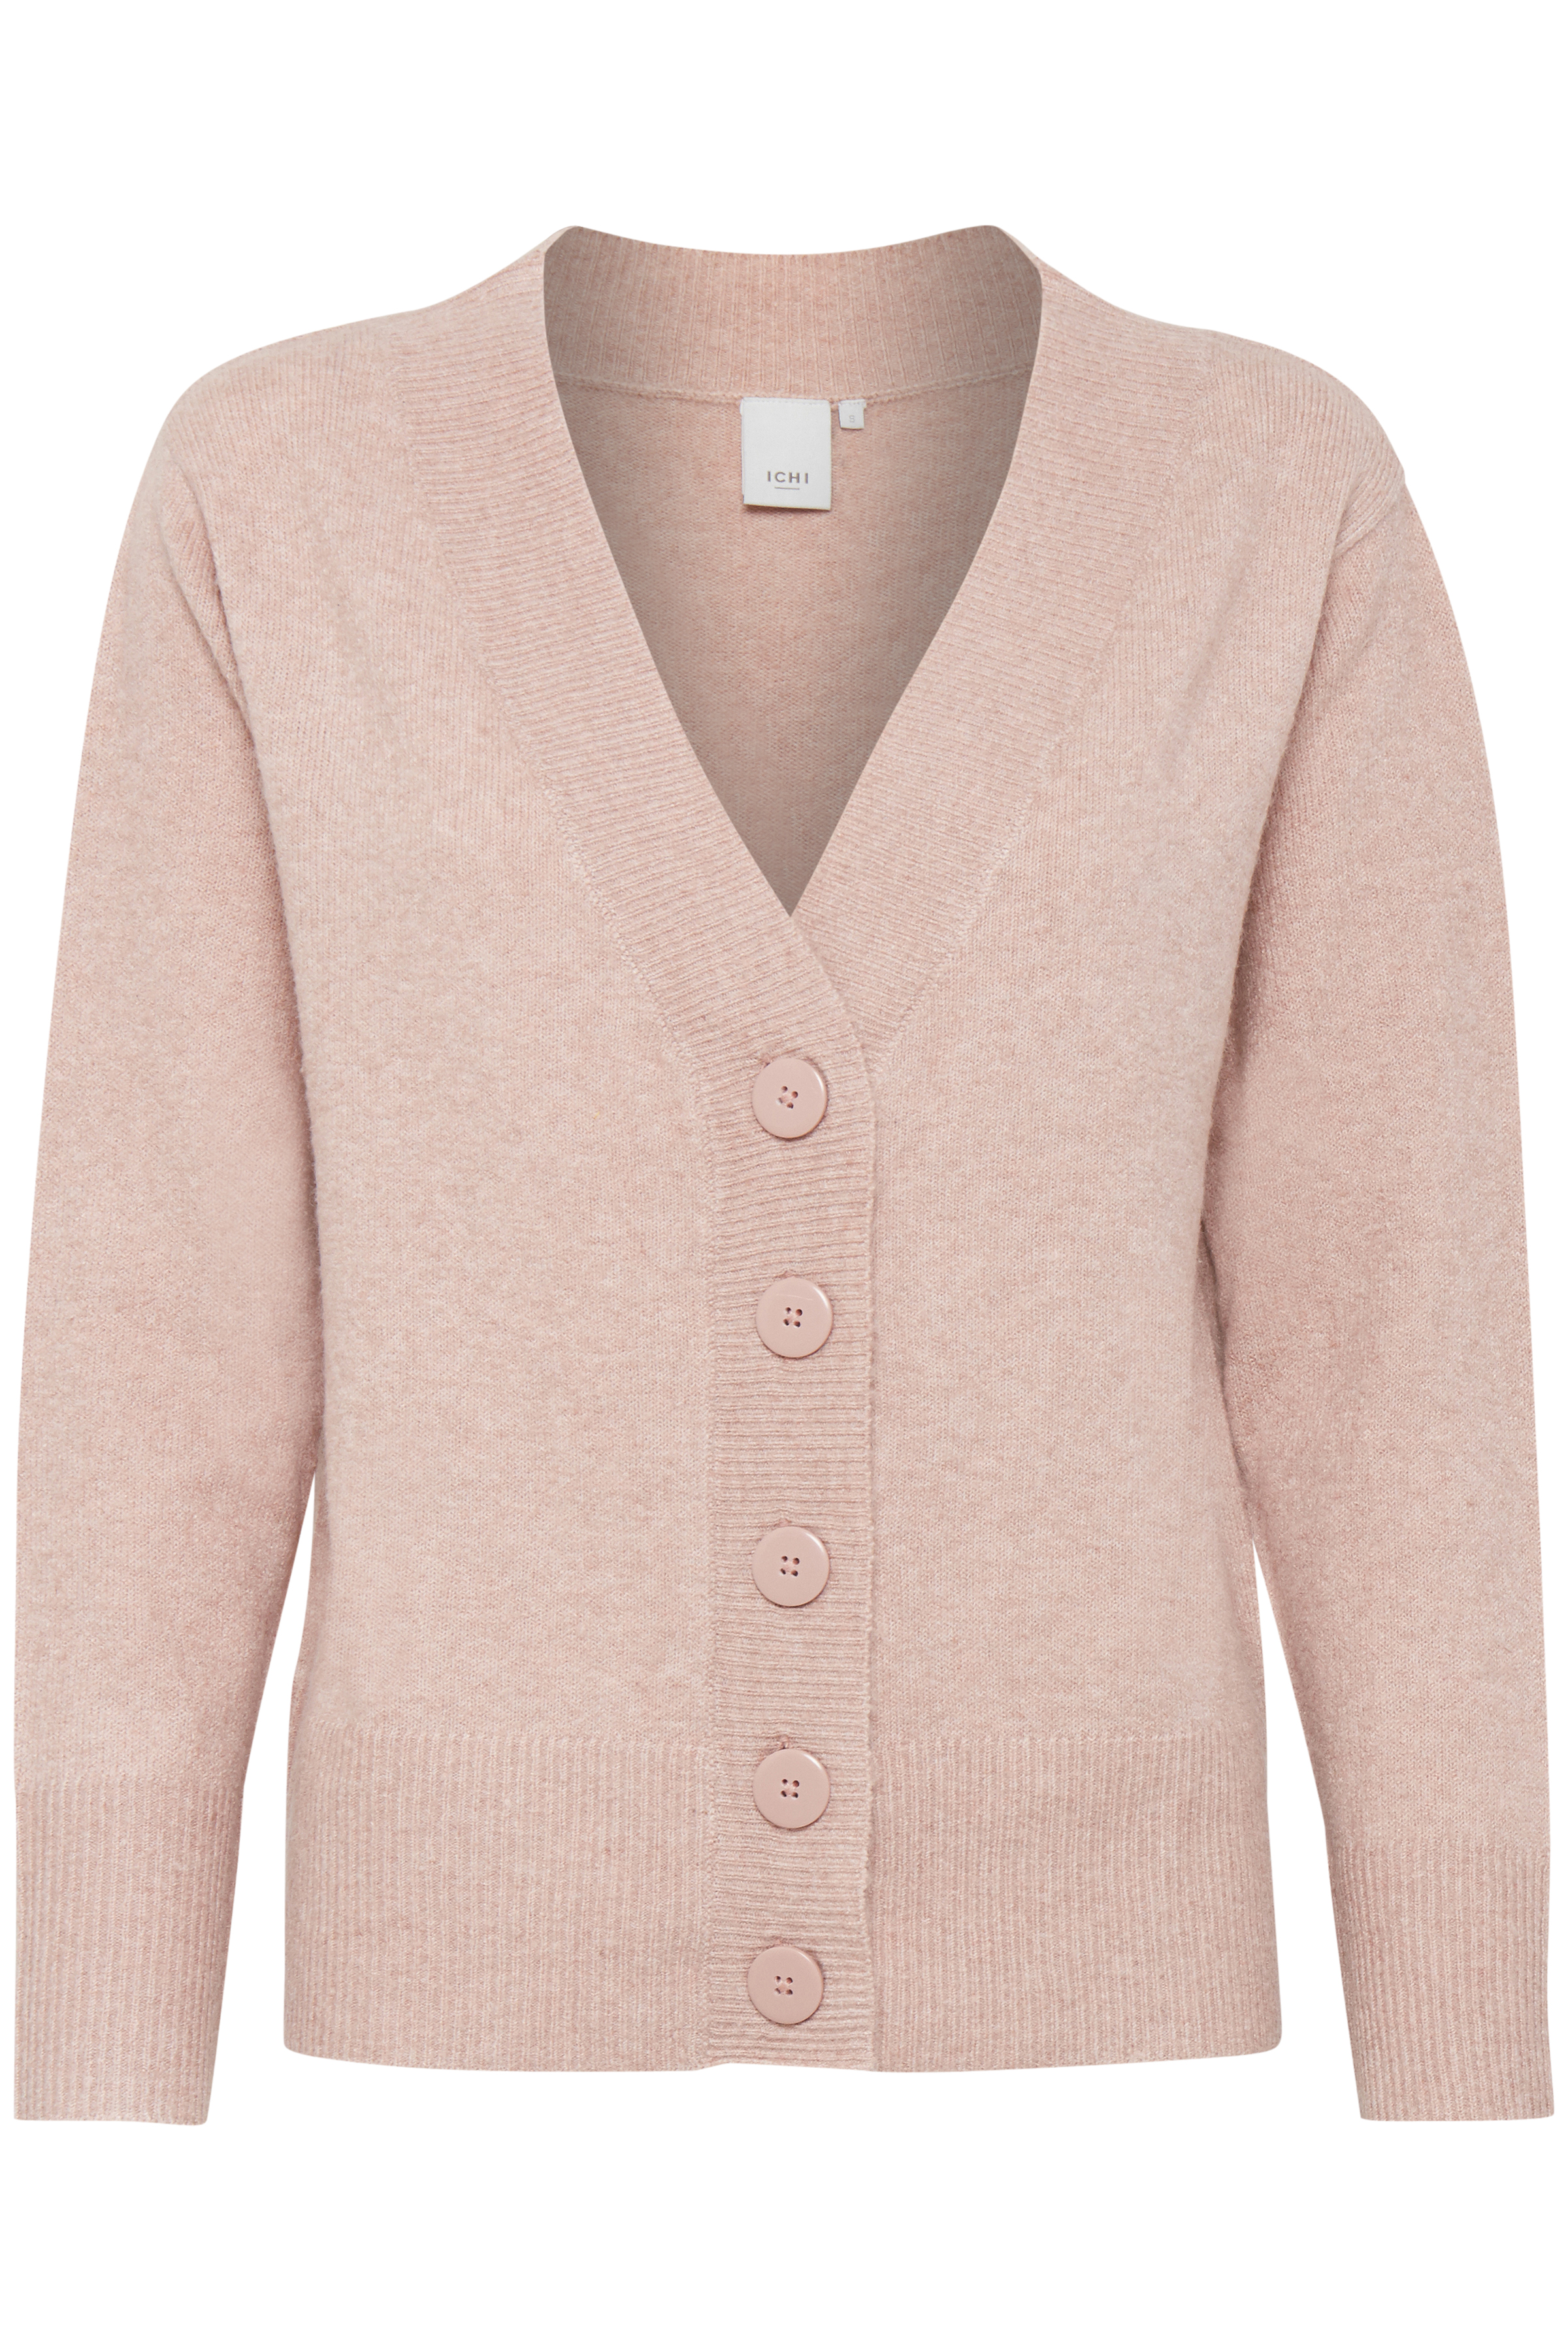 Canyon Clay Strikcardigan – Køb Canyon Clay Strikcardigan fra str. XS-XL her